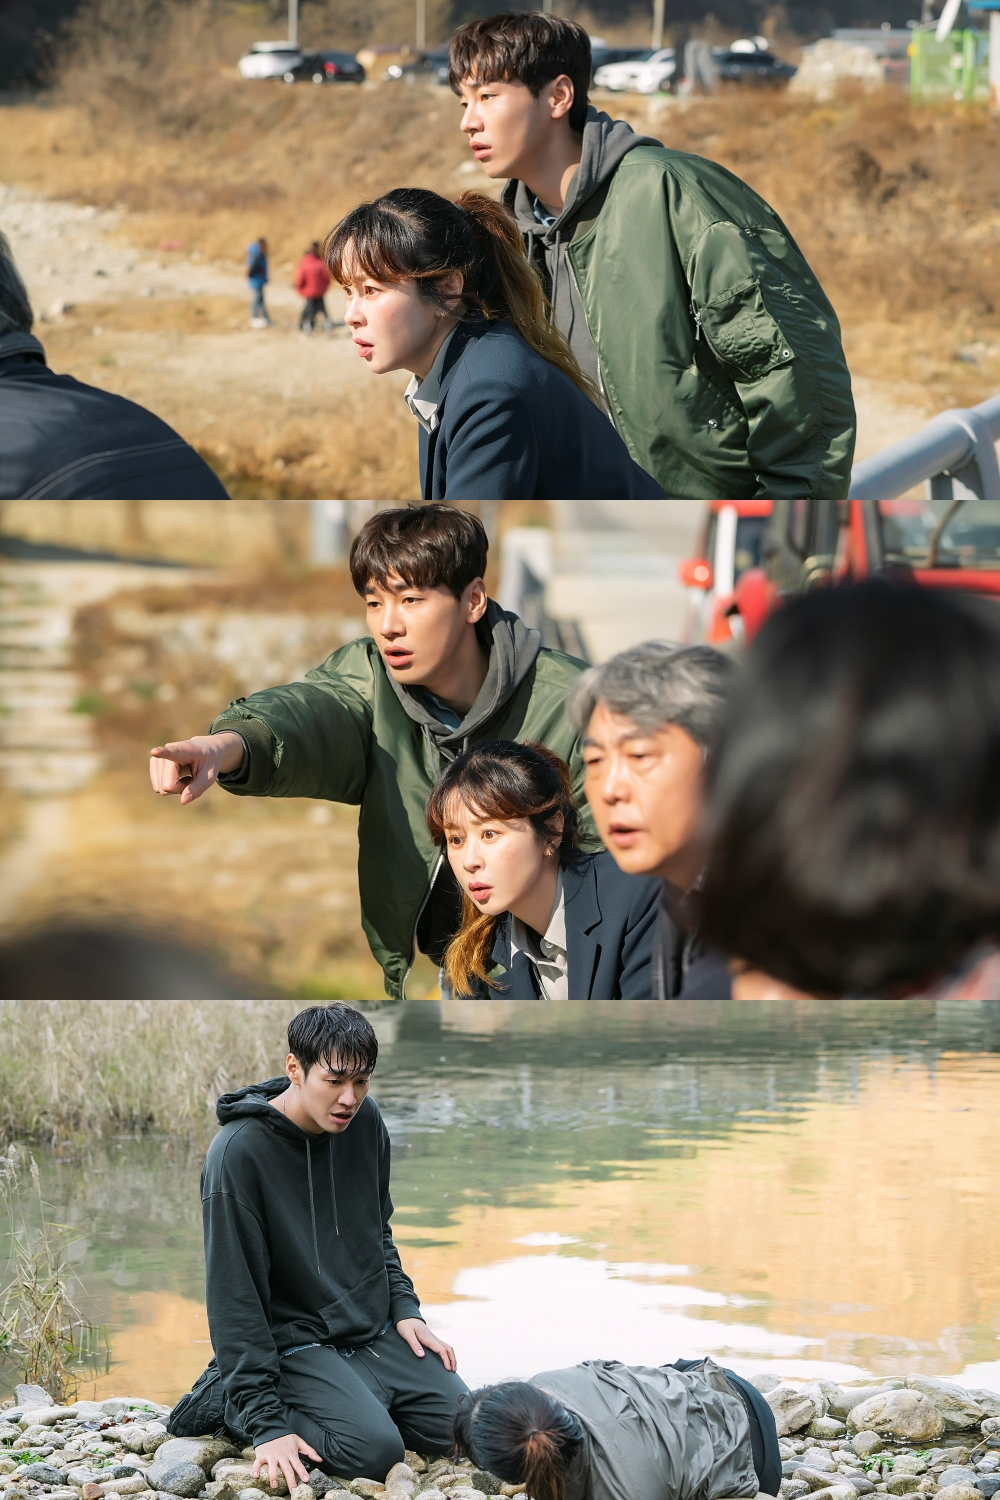 'Hello, me!' Choi Kang-hee tried to save a drowning student